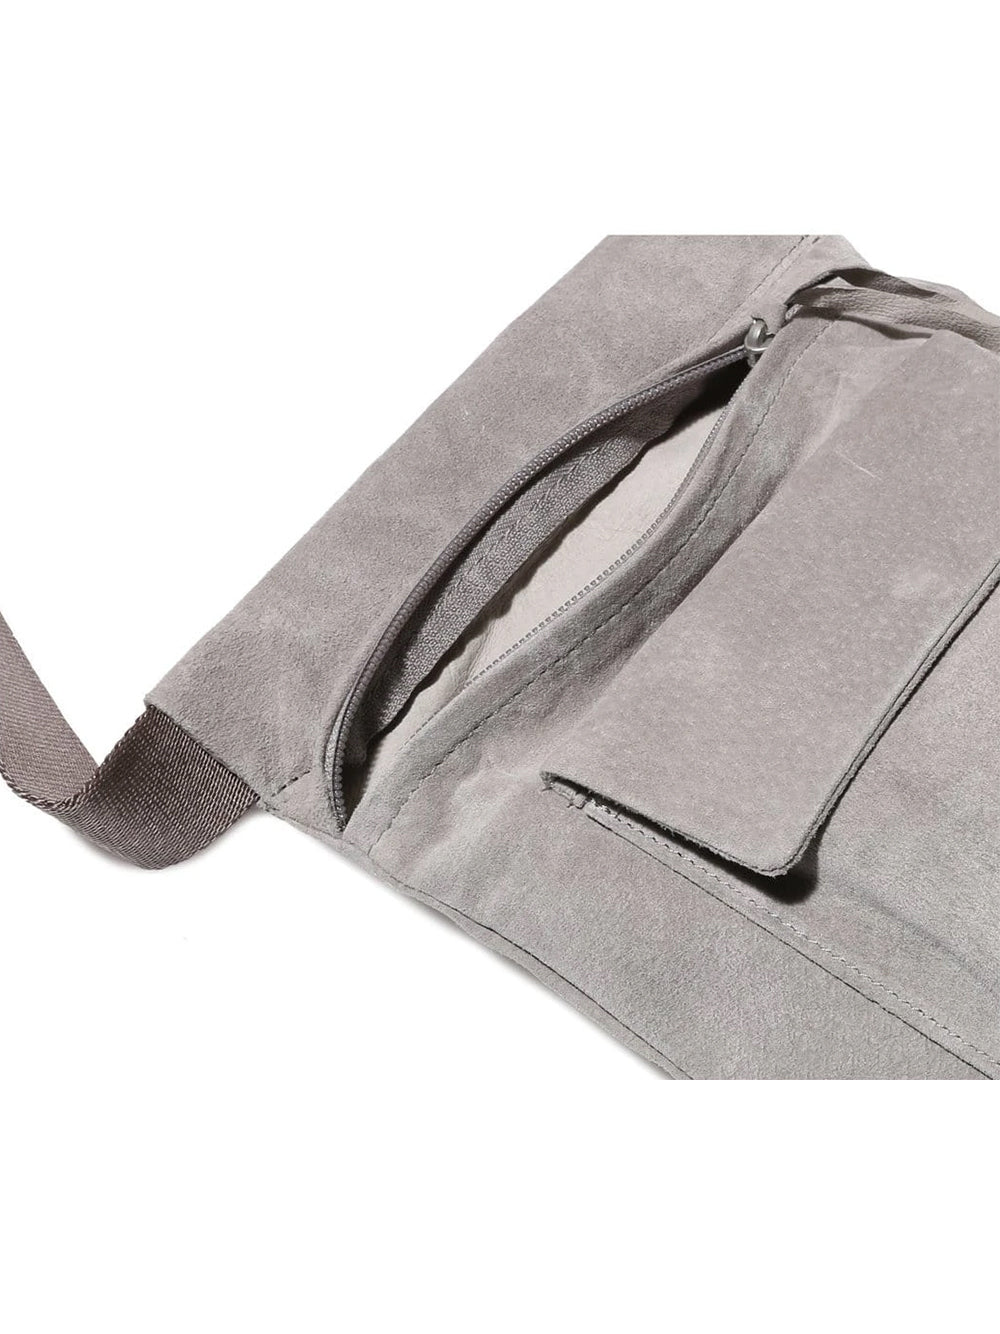 Waist Belt Bag Grey